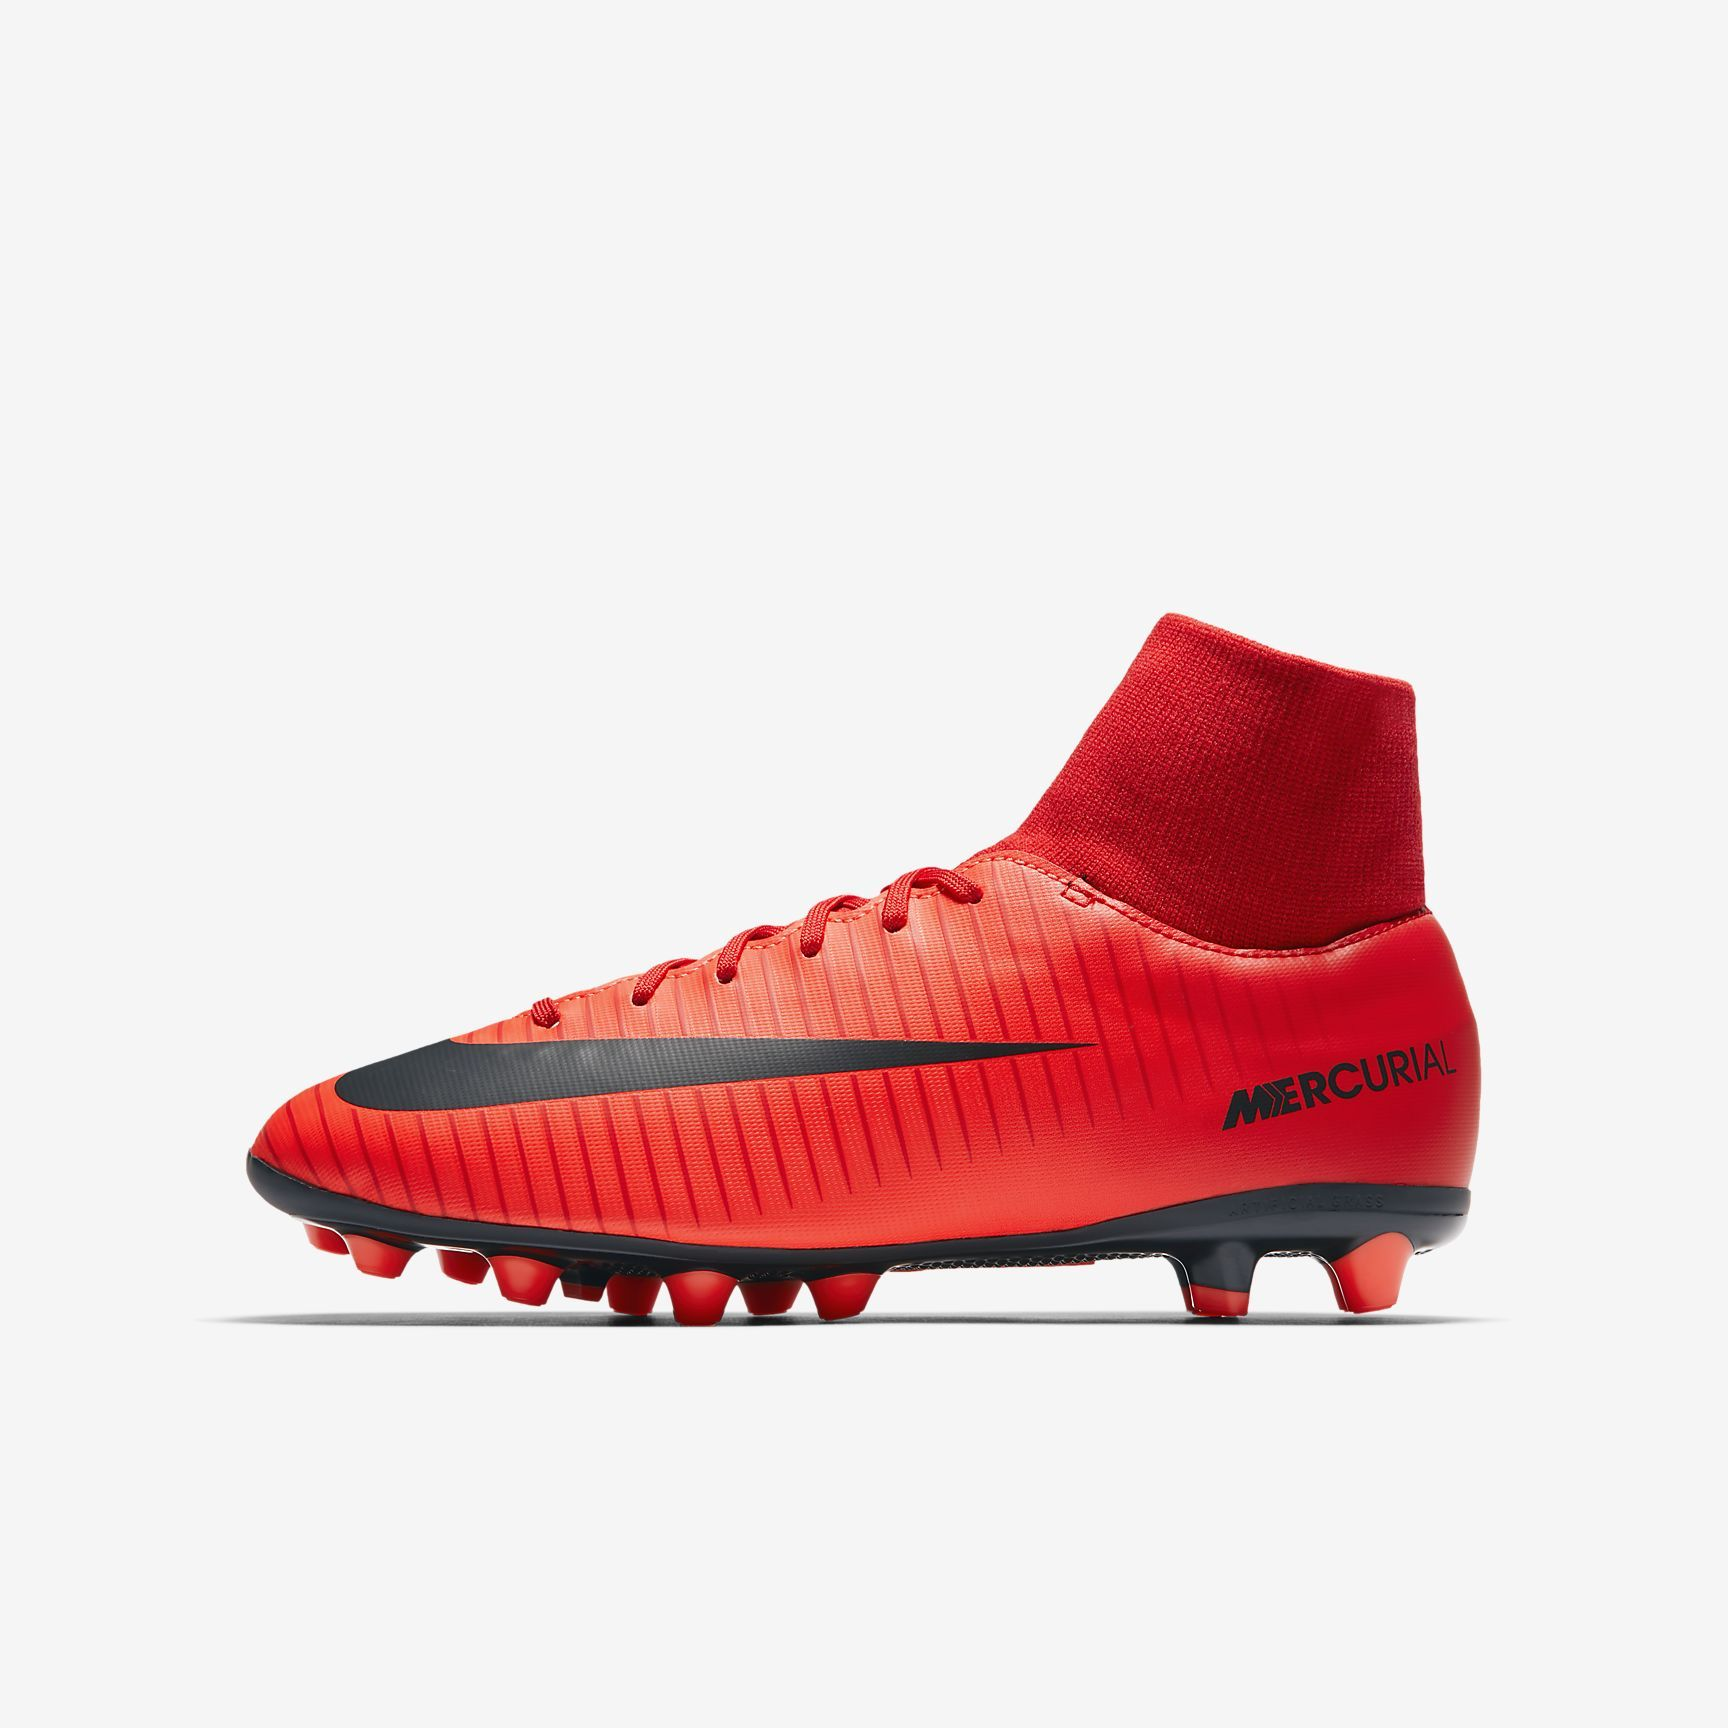 finest selection 78d97 a548b Chuteiras de futebol para relva artificial Nike Jr. Mercurial Victory VI  Dynamic Fit AG-PRO para criançaJúnior